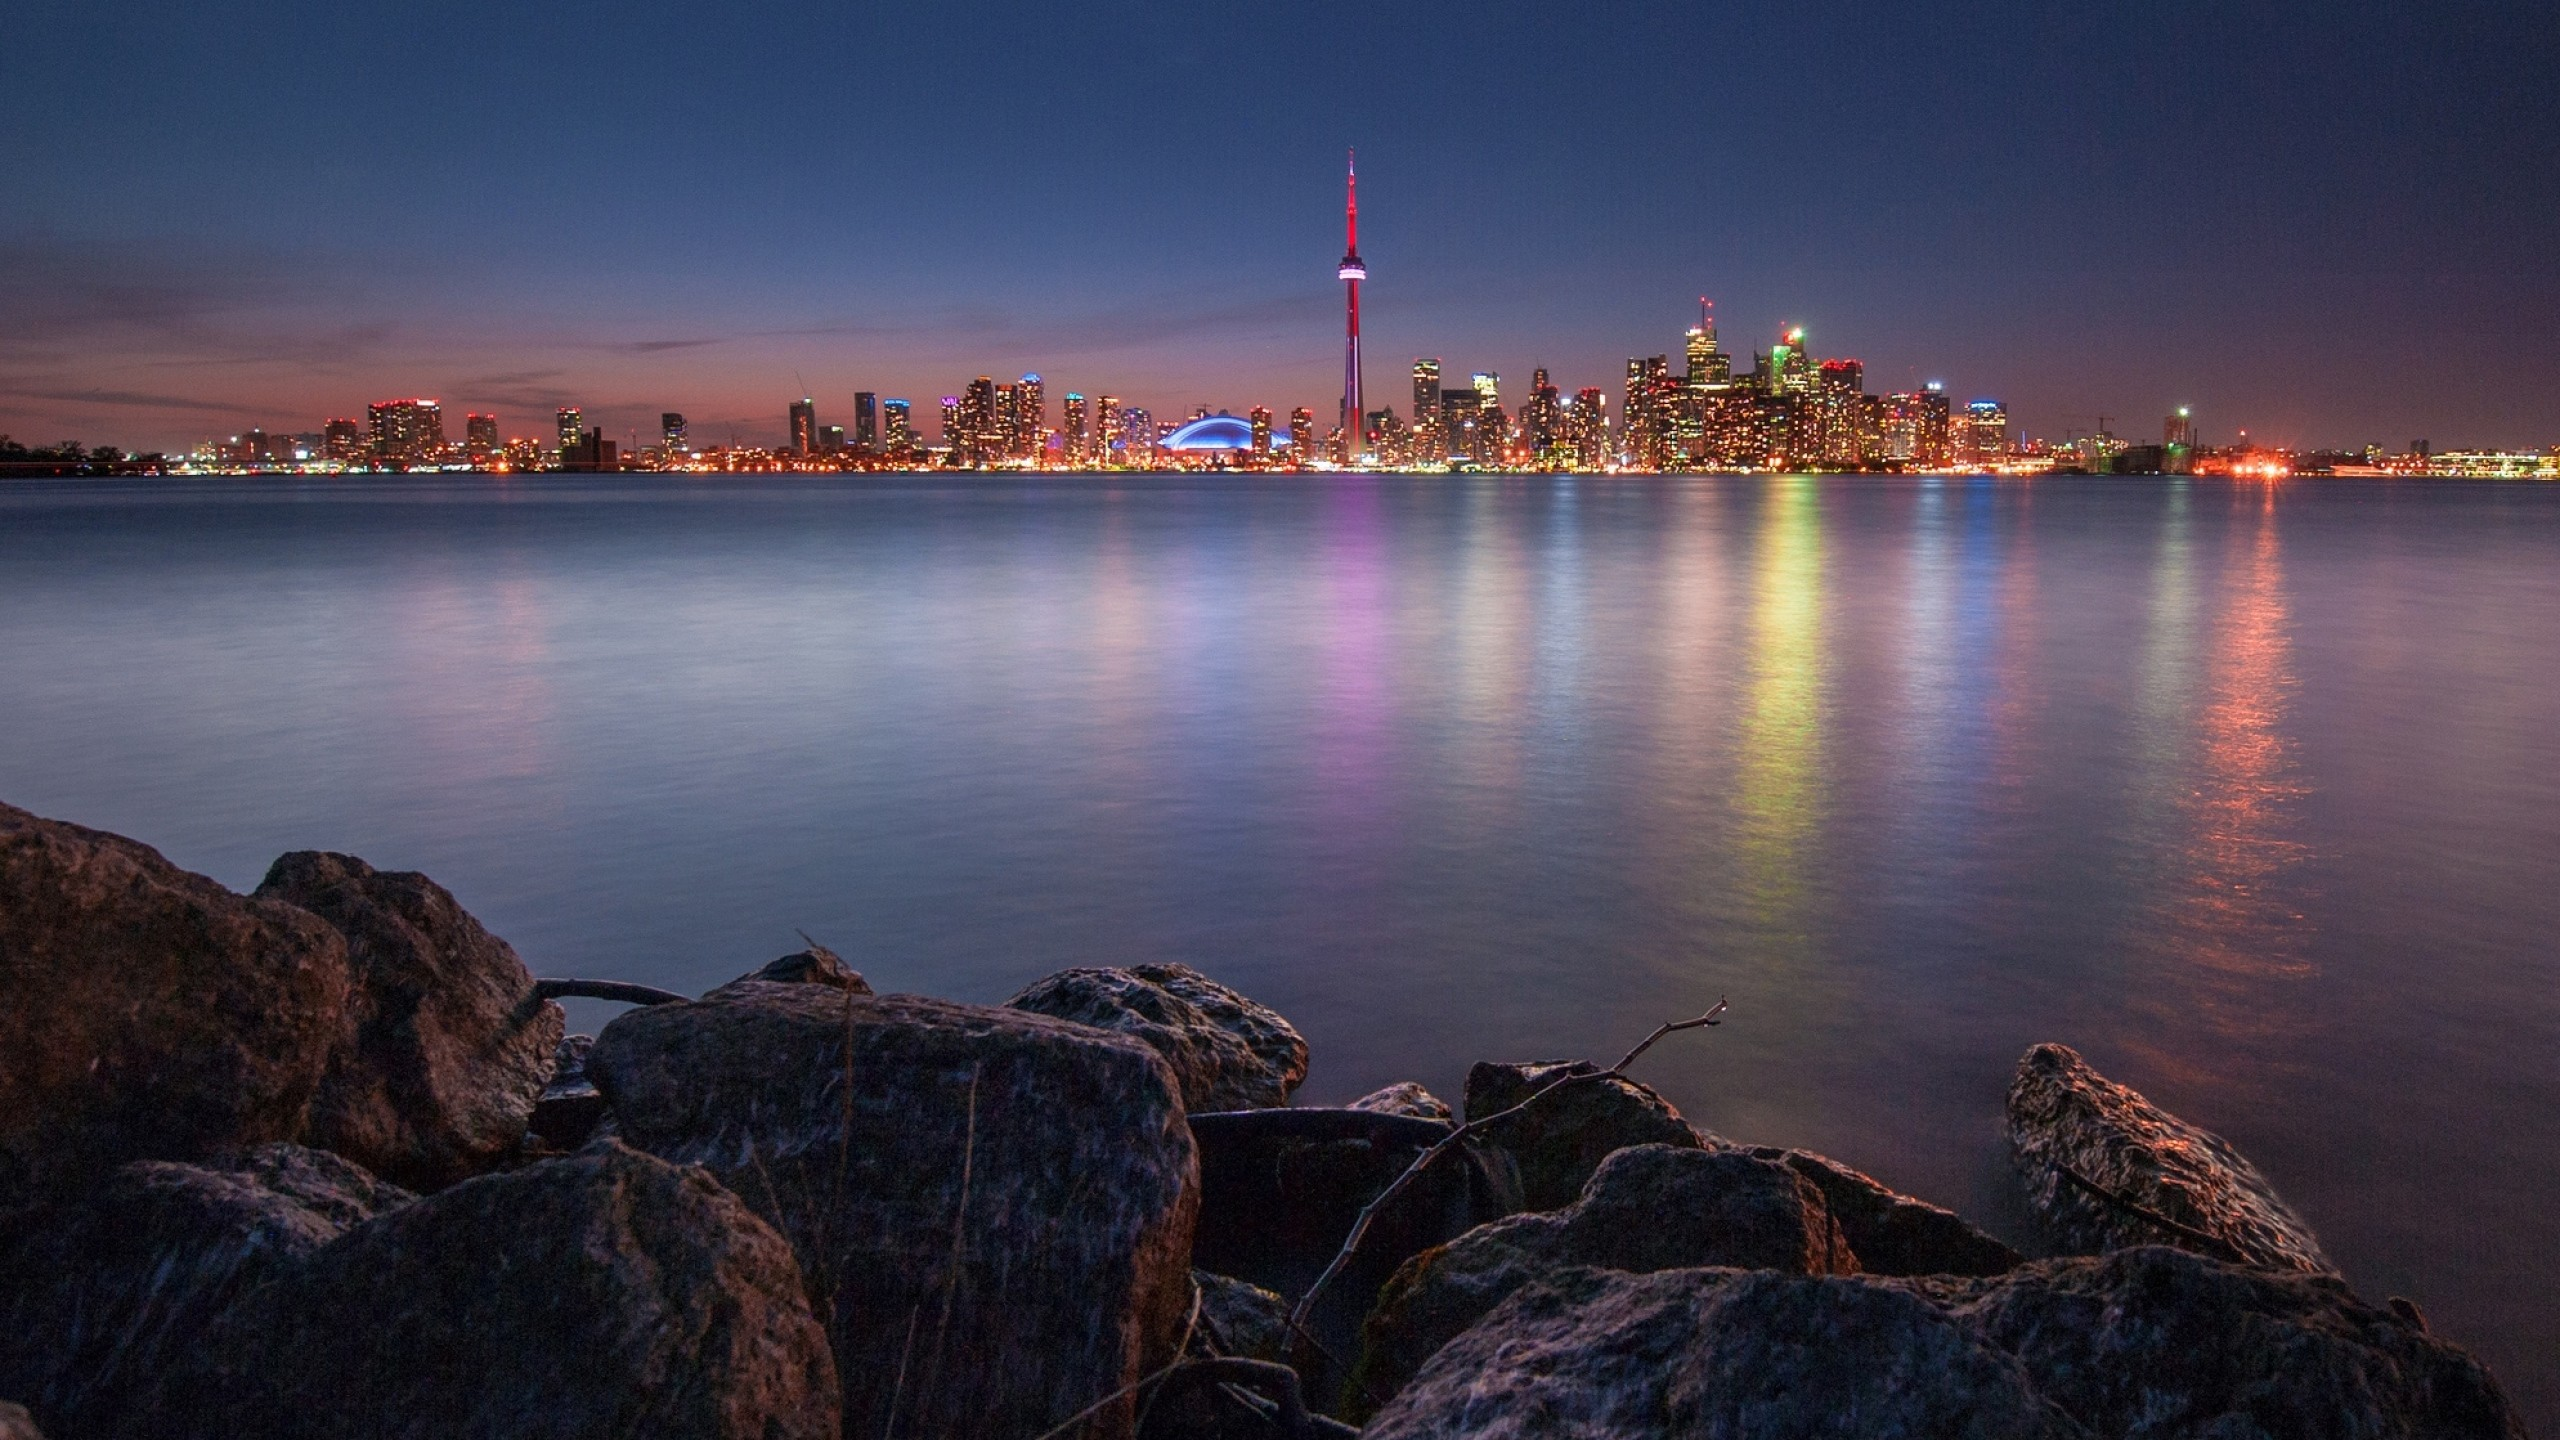 2560x1440  Wallpaper canada, lake, rocks, night, city, toronto, lights,